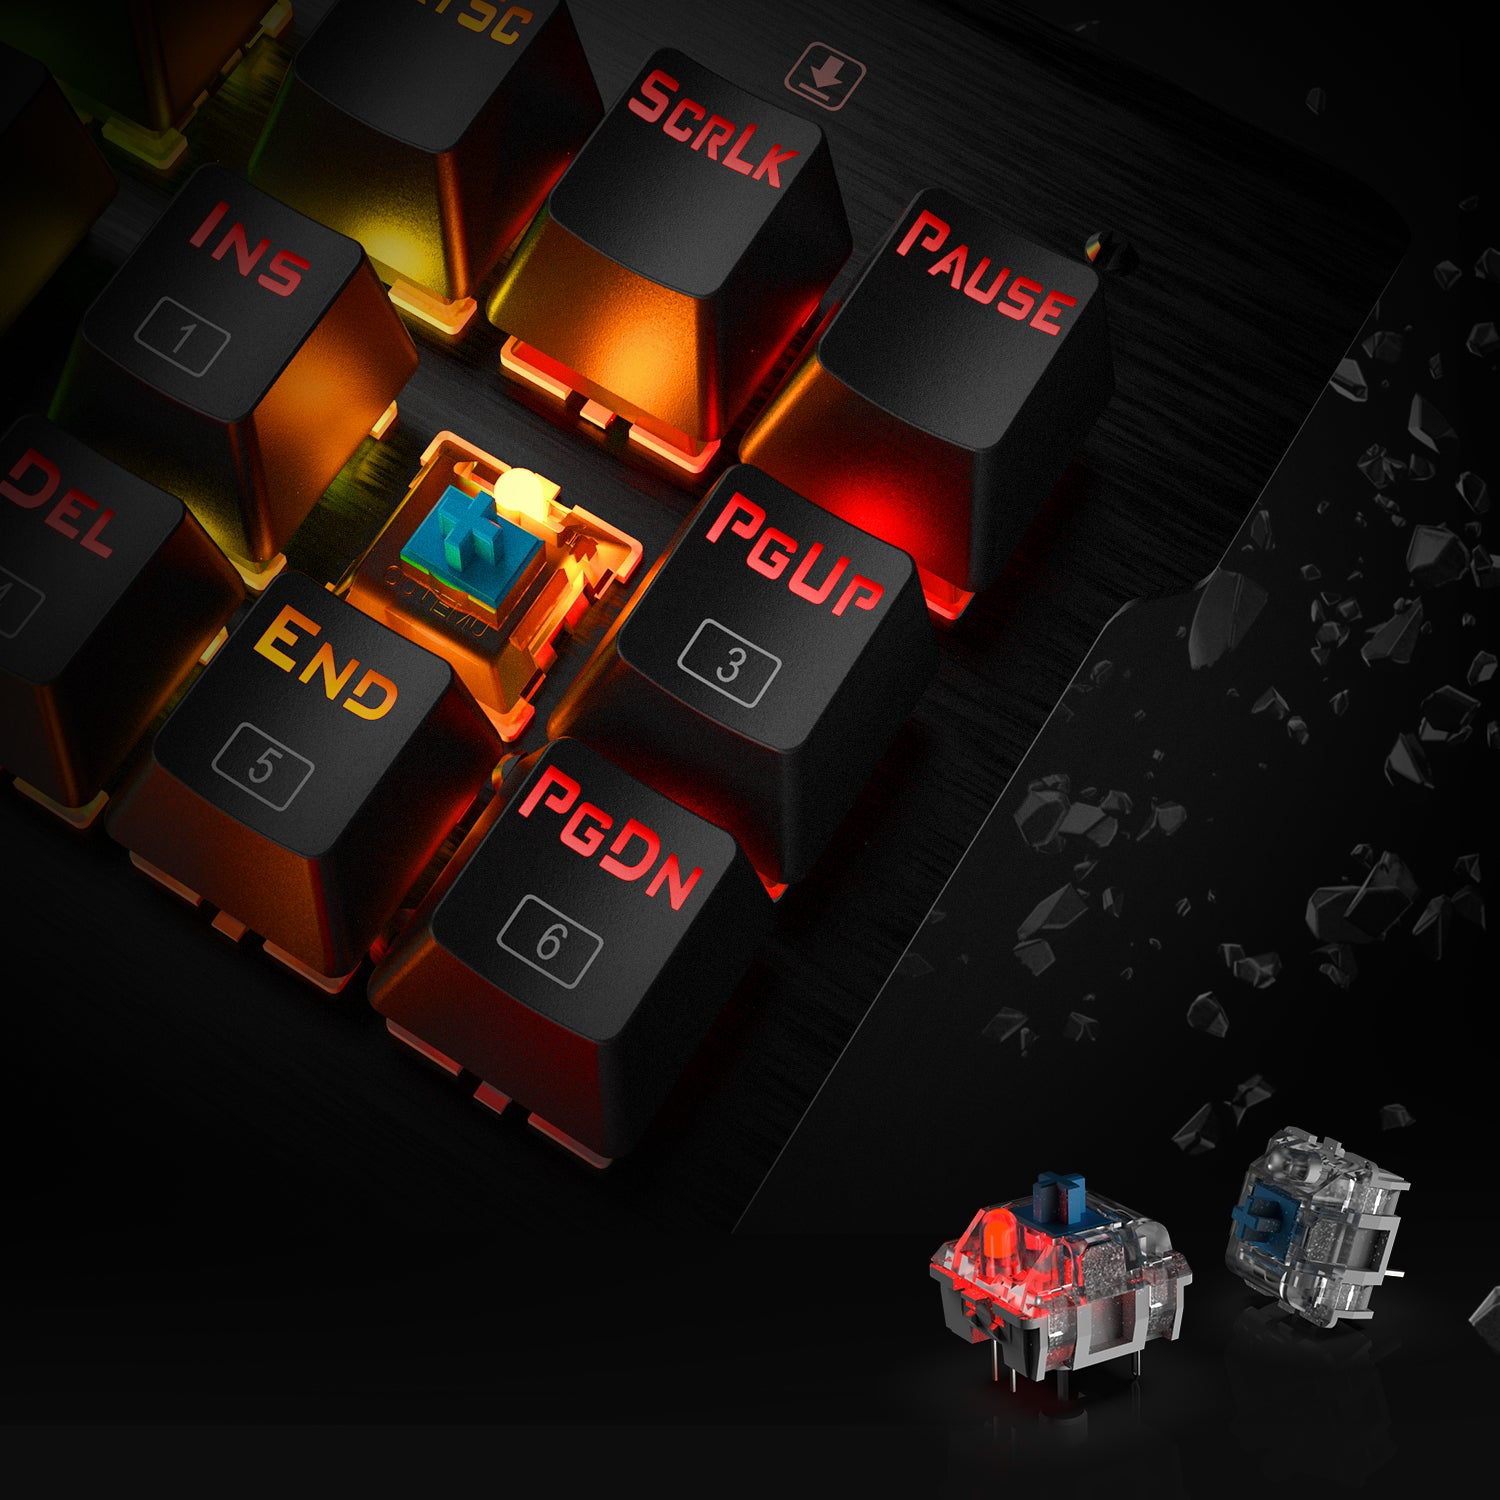 Redragon K561 VISNU Mechanical Gaming Keyboard, Anti-ghosting 87 Keys, RGB Backlit, Wired Compact Keyboard with Clicky Blue Switches